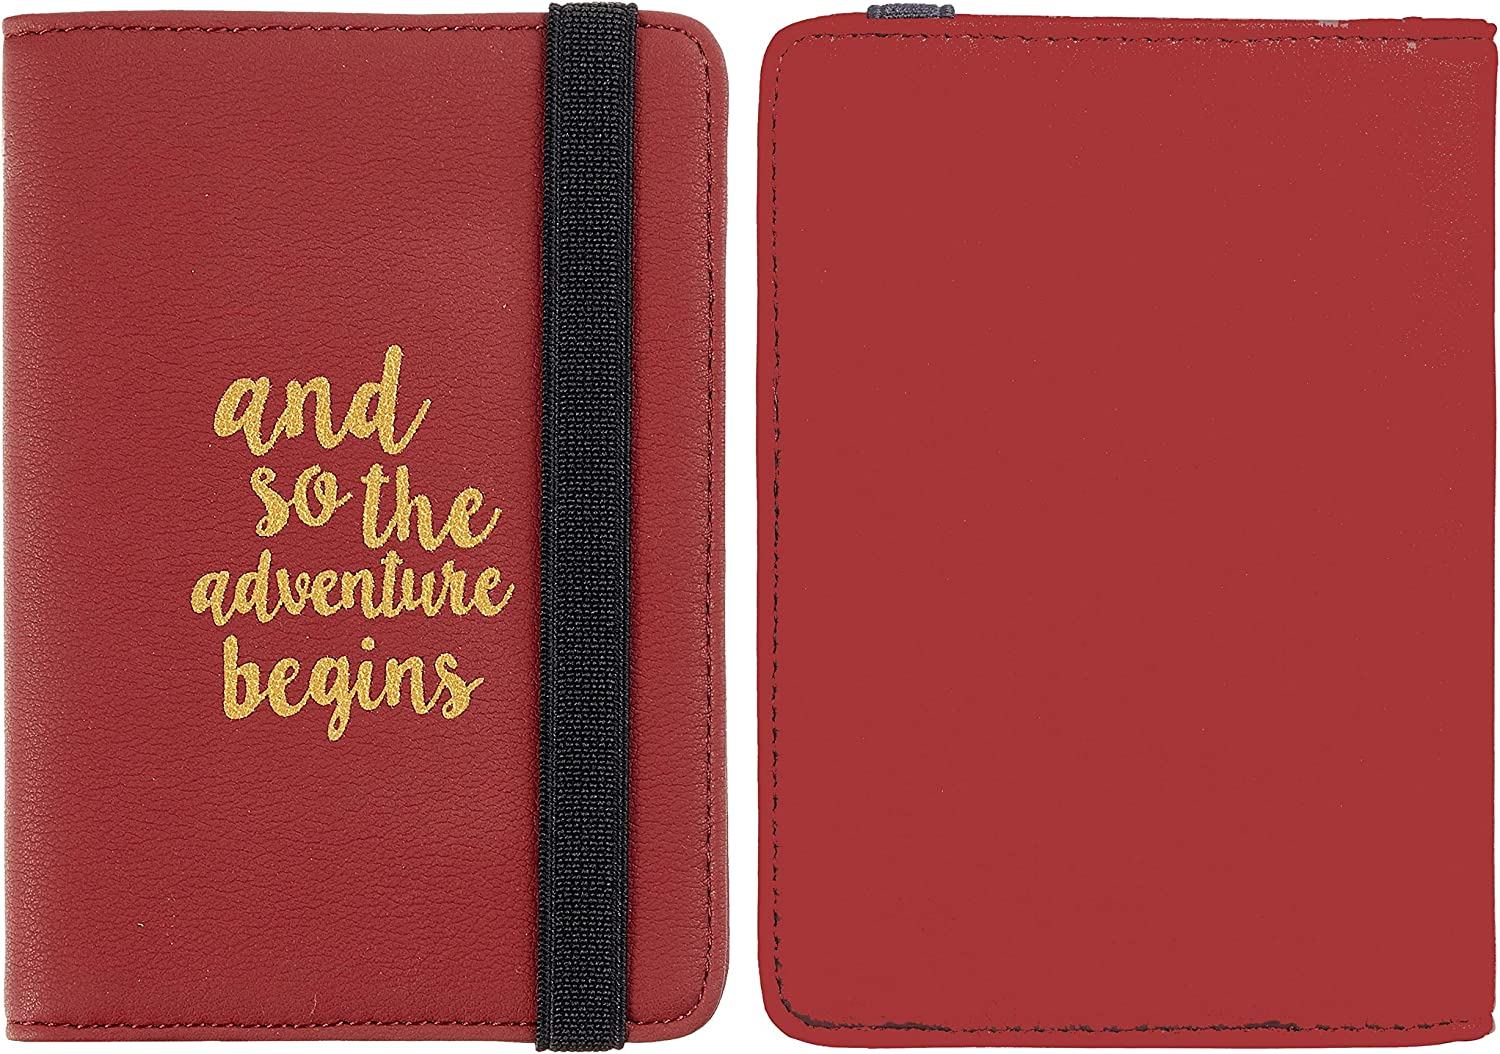 Casmonal Passport Holder Cover Wallet RFID Blocking Leather Card Case  Travel Document Organizer Accessories Travel Accessories